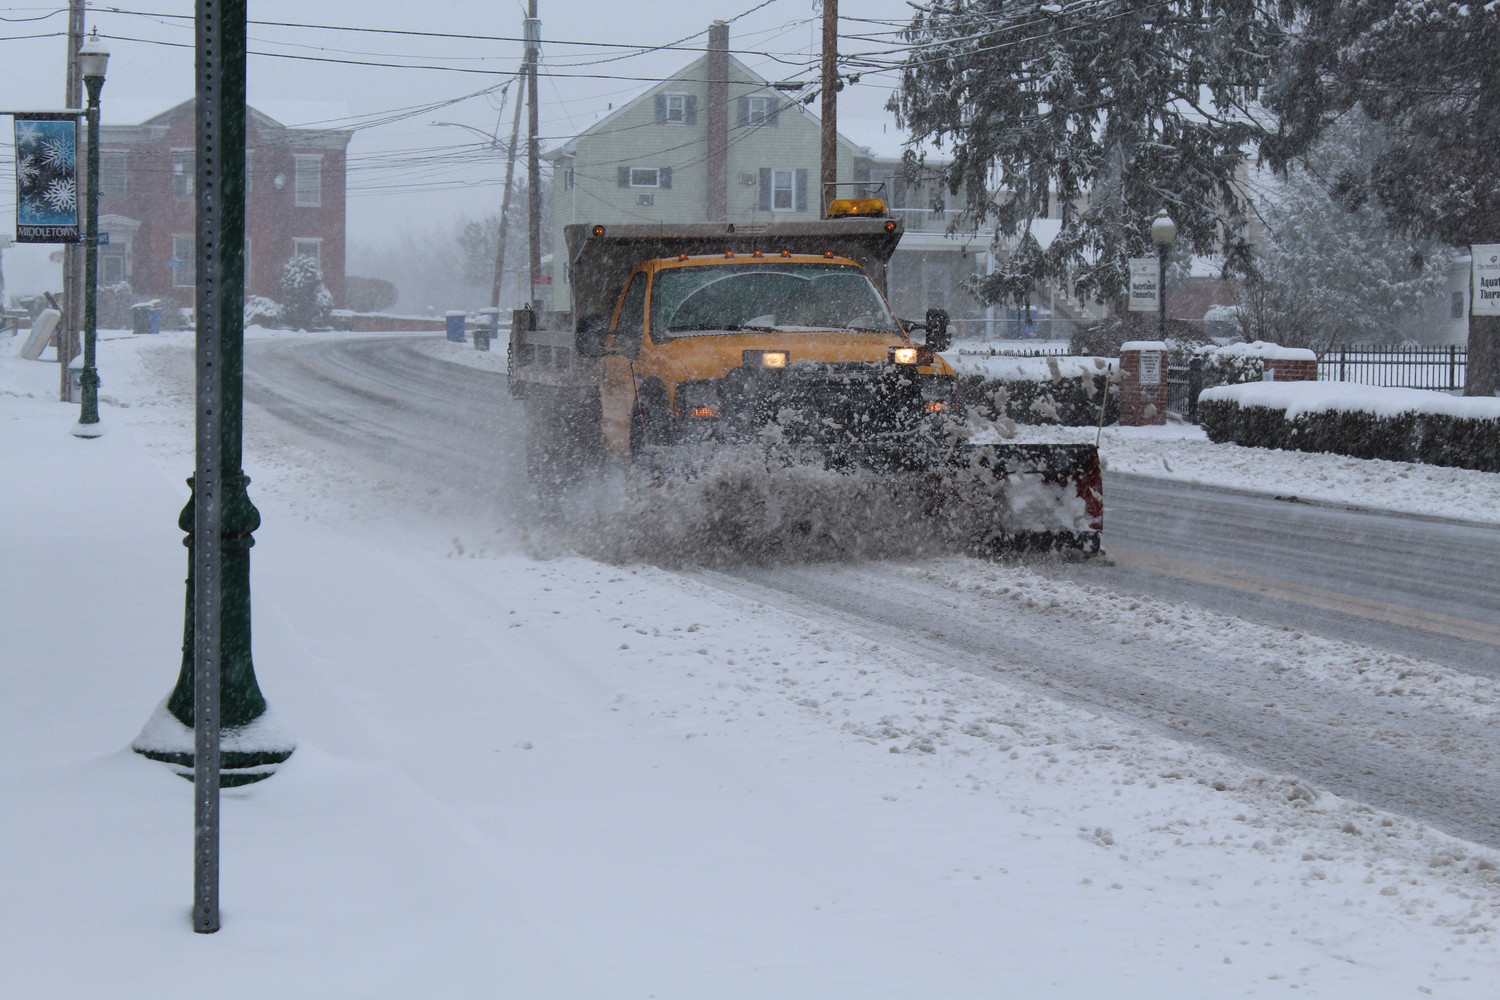 Plows were busy clearing snow Wednesday morning.